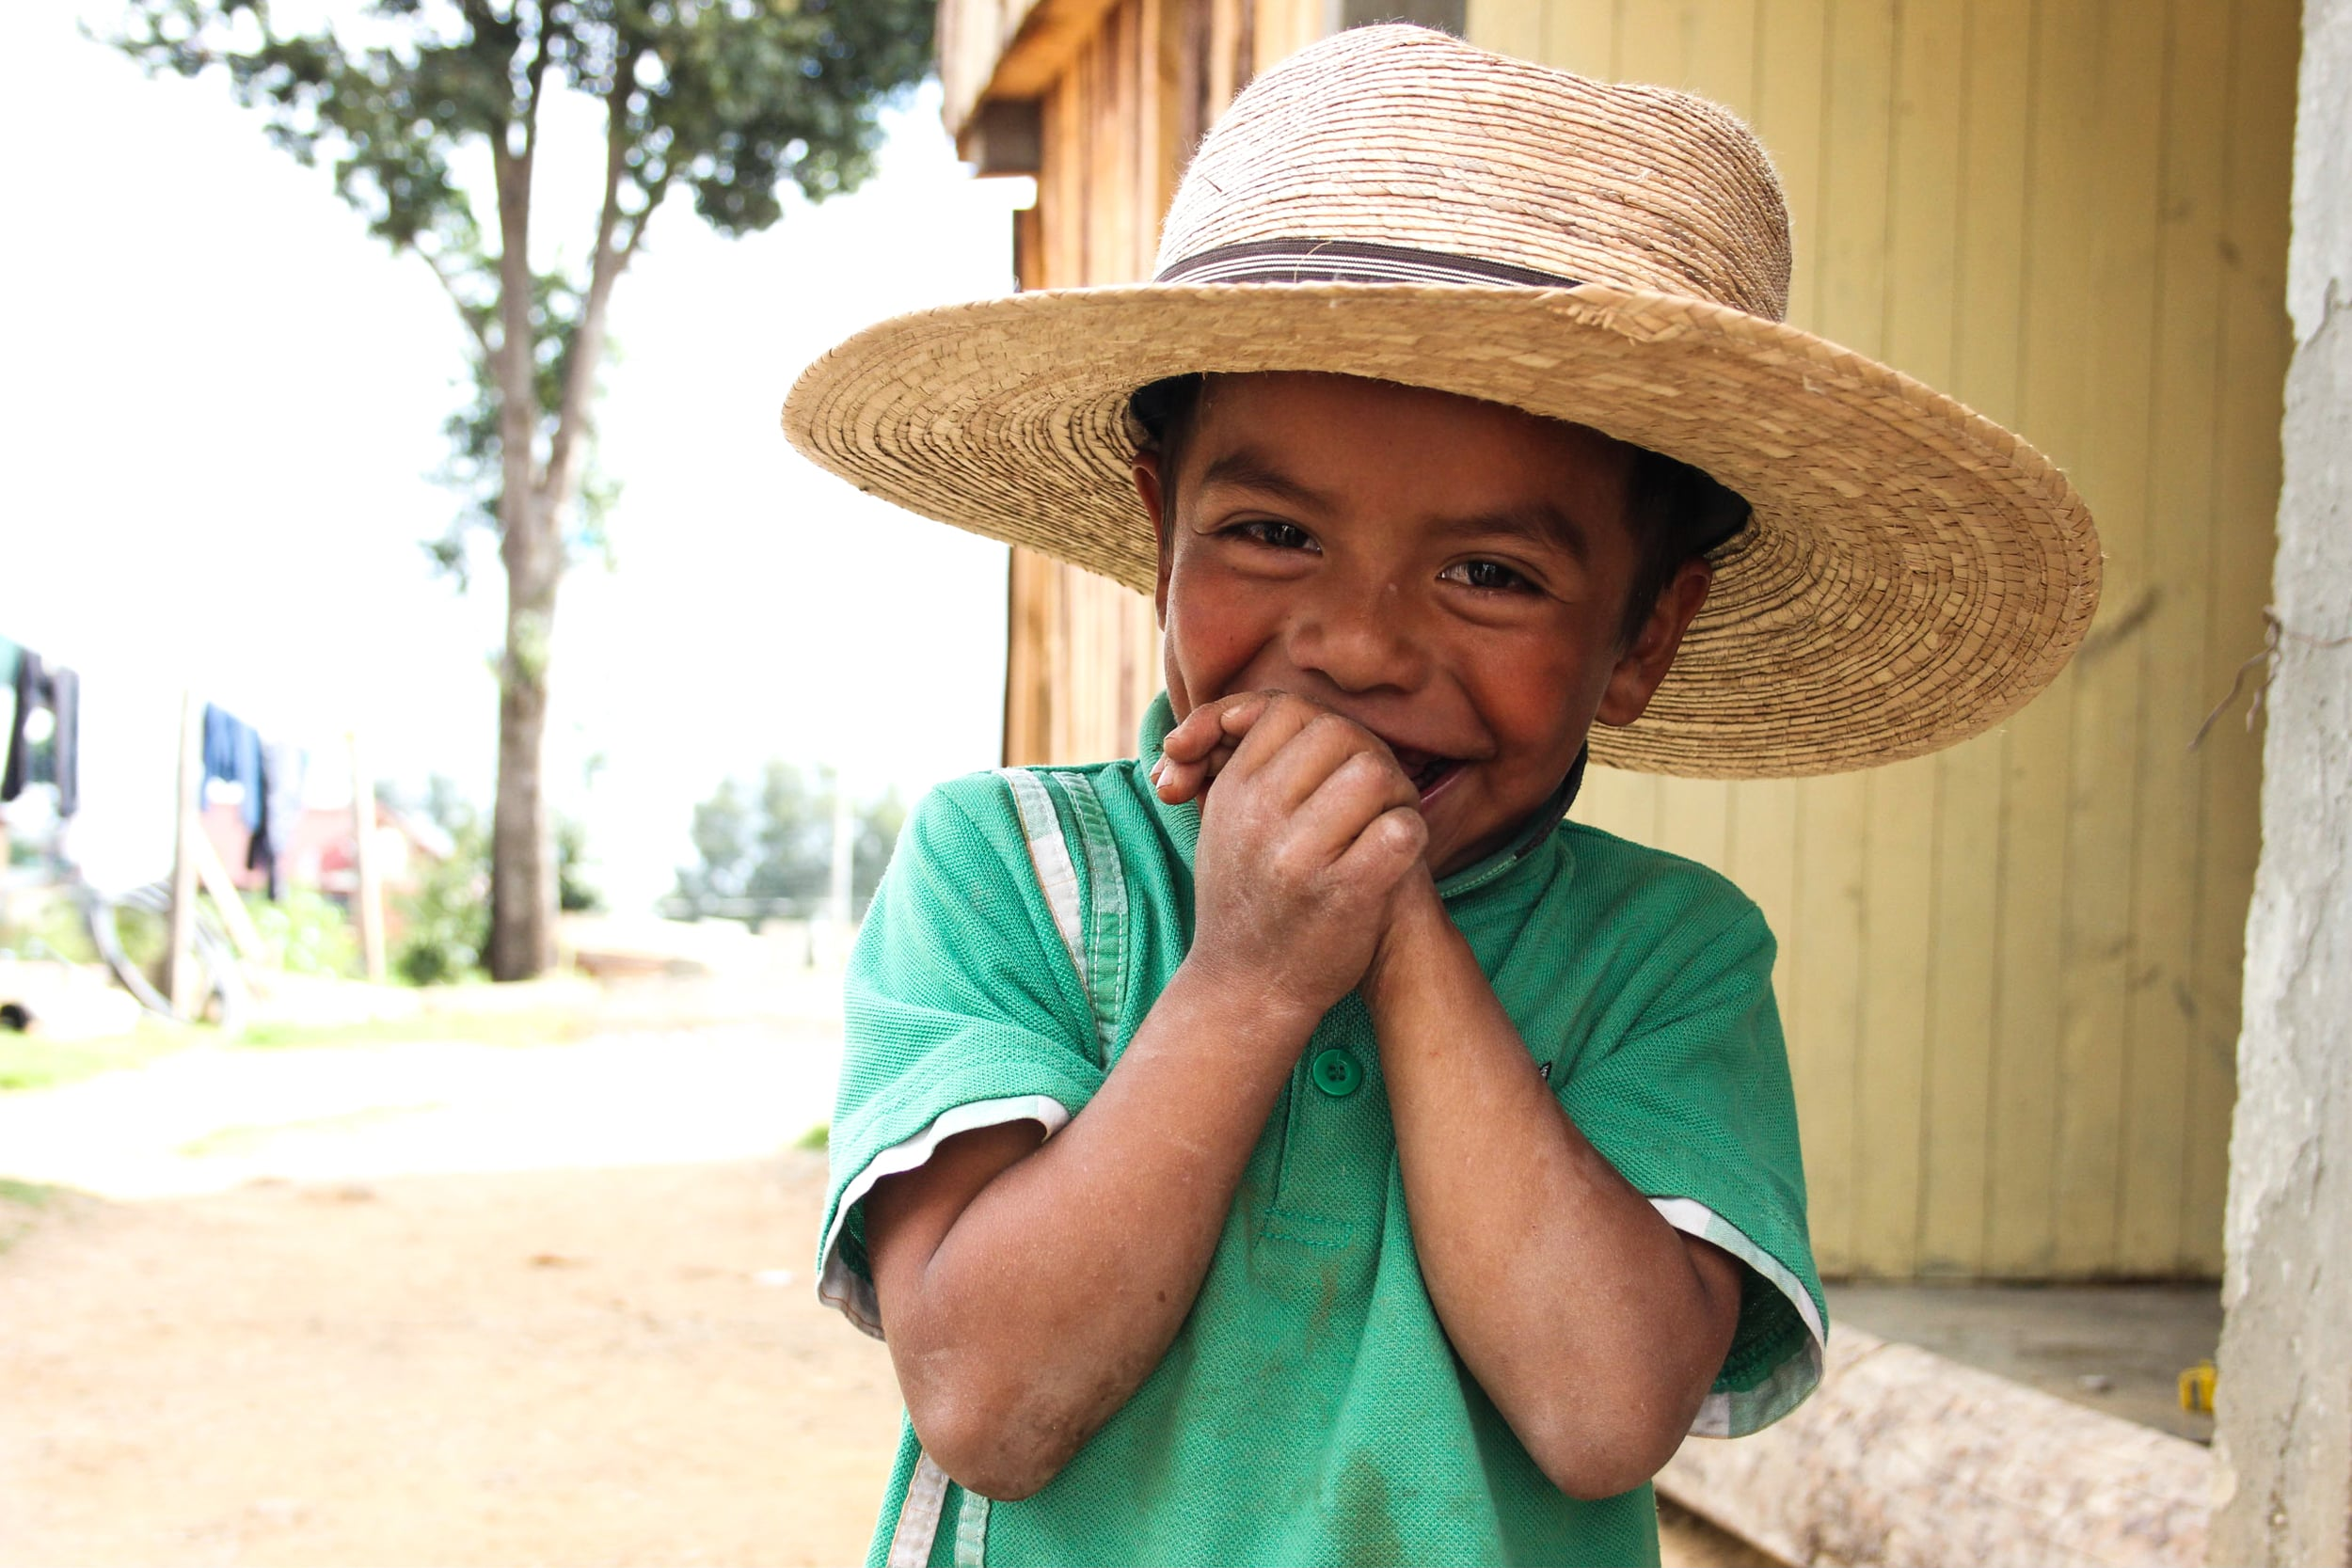 A child in San Jose del Pacifico, Mexico. This small town in the mountains is famed for hallucinogenic mushrooms. While tourists enjoy psychedelics, this child's family earns their living making corn tortillas.